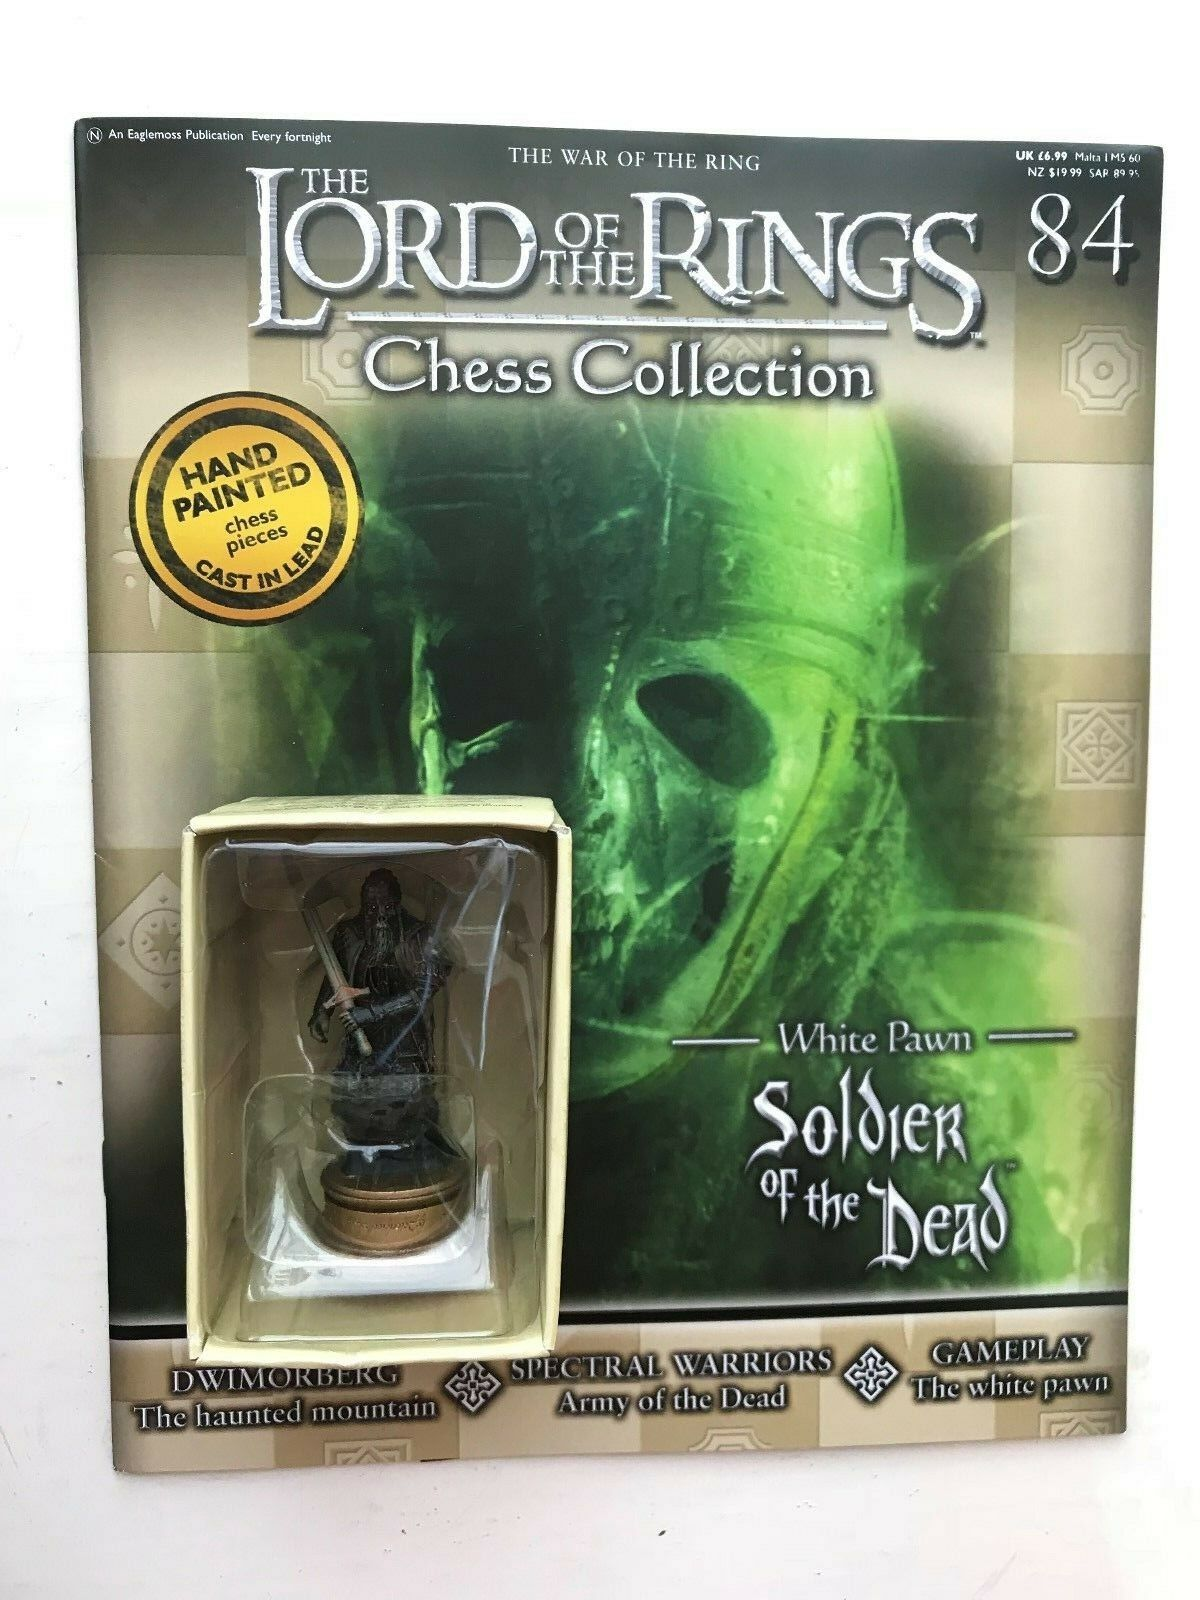 LORD OF THE RINGS CHESS COLLECTION 84 SOLDIER OF THE DEAD EAGLEMOSS FIGURE + MAG